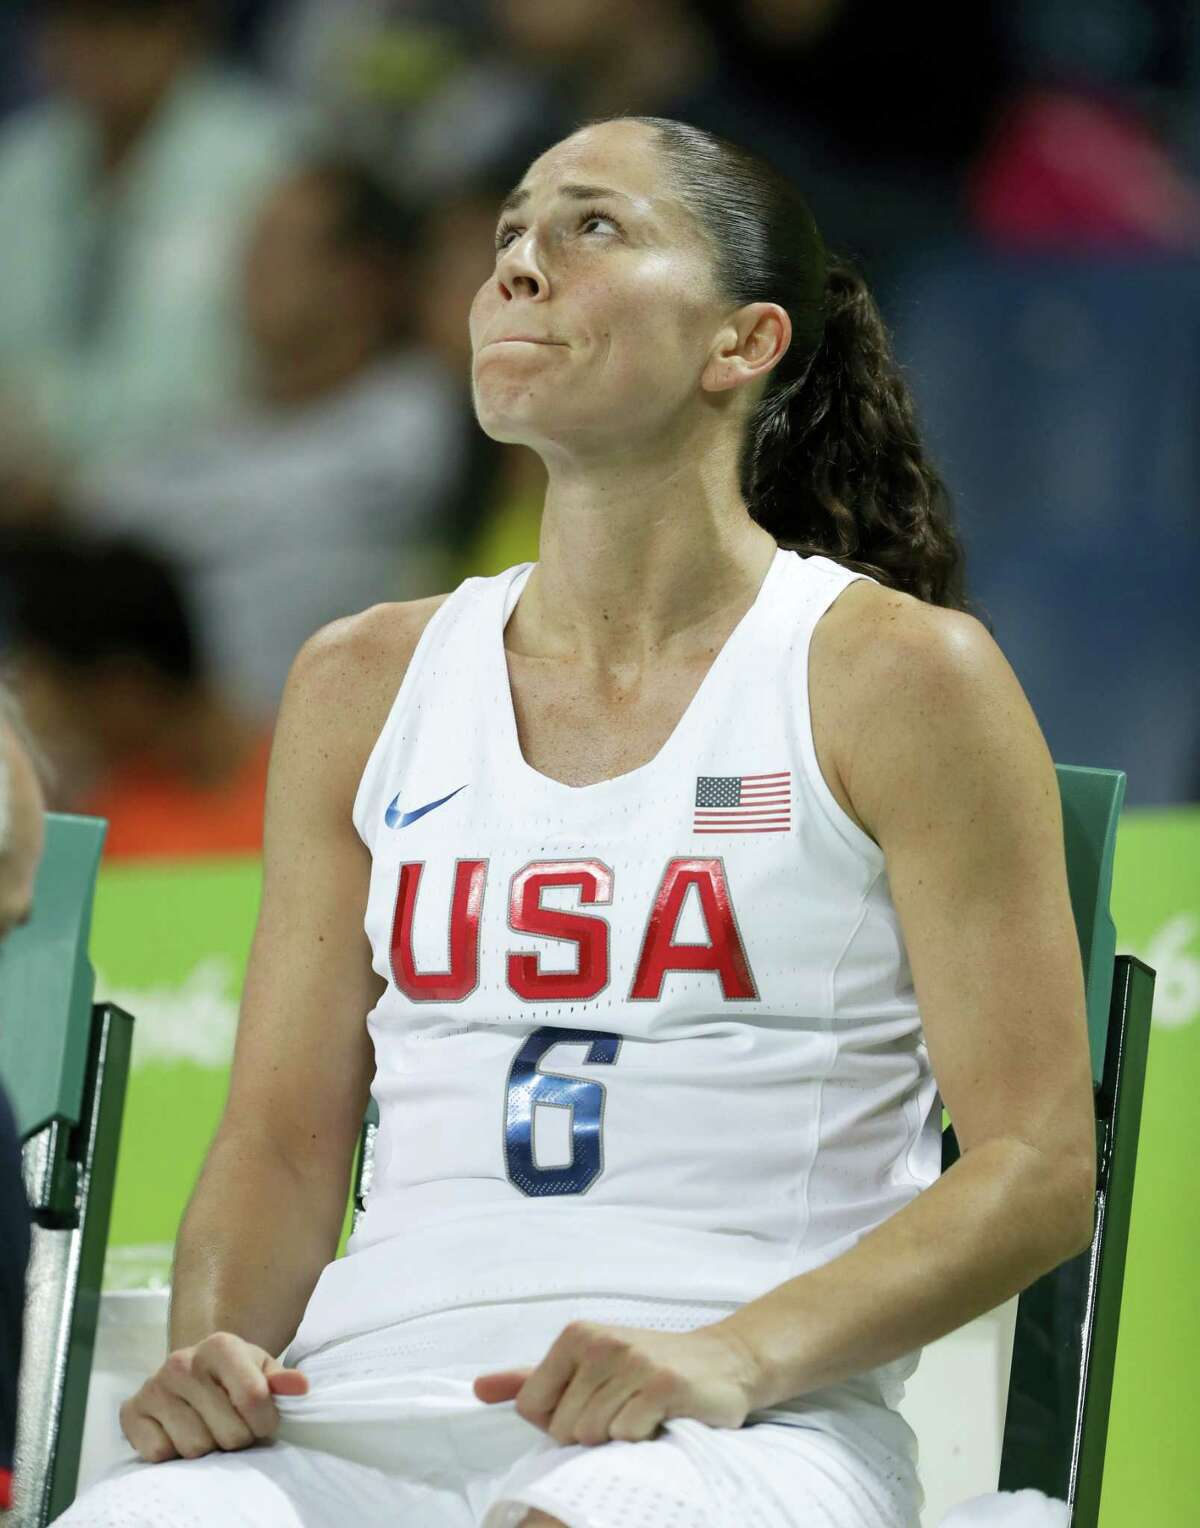 United States' Sue Bird sits on the bench after a fall during a women's quarterfinal round basketball game against Japan at the 2016 Summer Olympics in Rio de Janeiro, Brazil, Tuesday, Aug. 16, 2016.